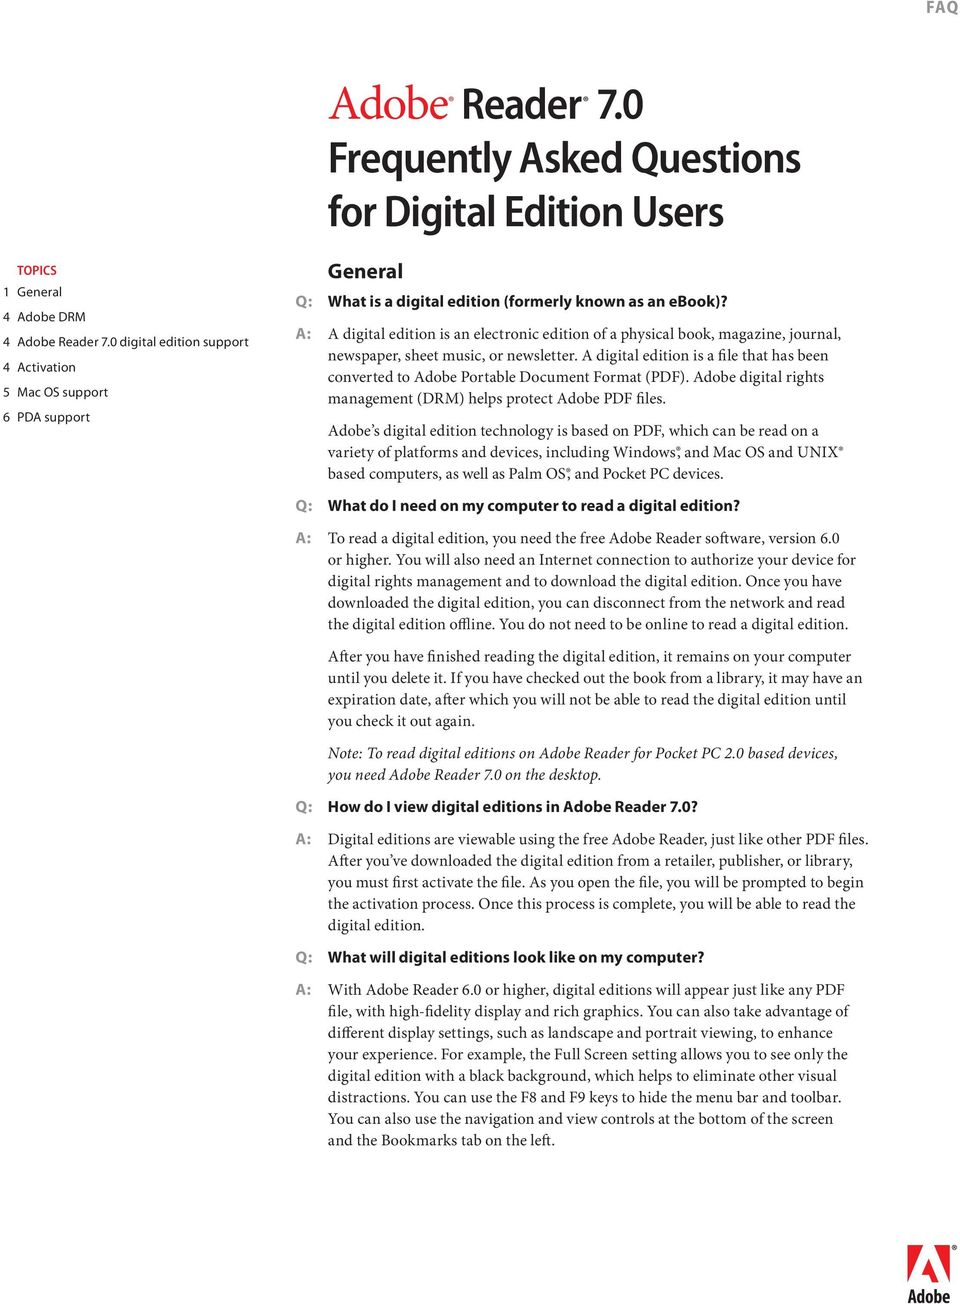 A digital edition is a file that has been converted to Adobe Portable Document Format (PDF). Adobe digital rights management (DRM) helps protect Adobe PDF files.